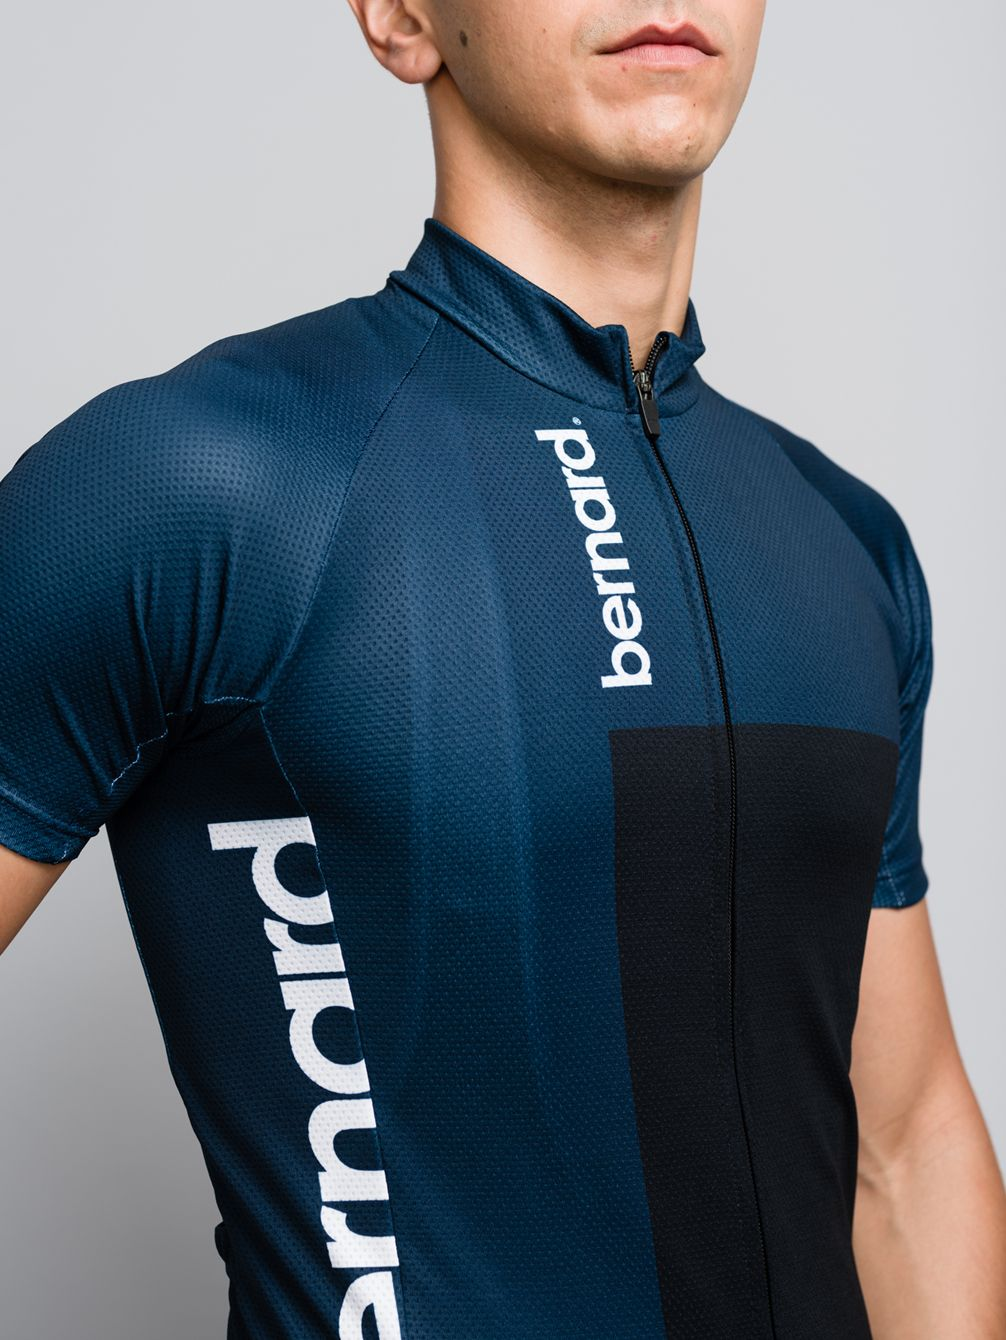 Download Series 607 Jersey — bernard | Cycling outfit, Cycling ...